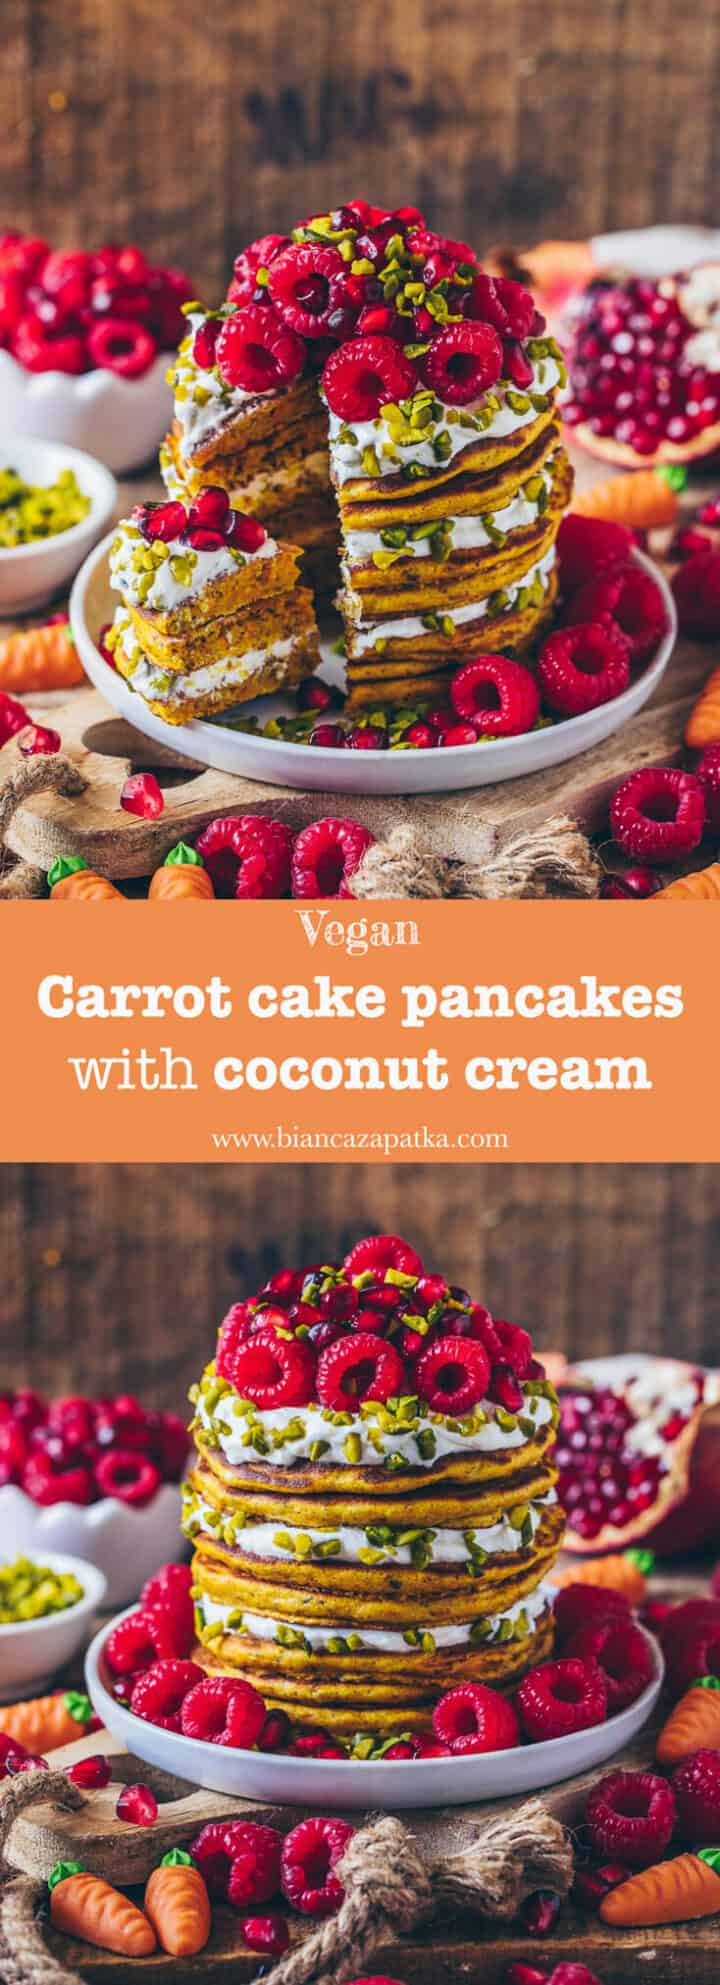 These vegan carrot cake pancakes with coconut cream are a perfect and healthy breakfast and also great for dessert. Packed with moist carrots, flavorful almonds, and a creamy coconut topping, they will even convince picky eaters. They are also suitable for Easter! :-)